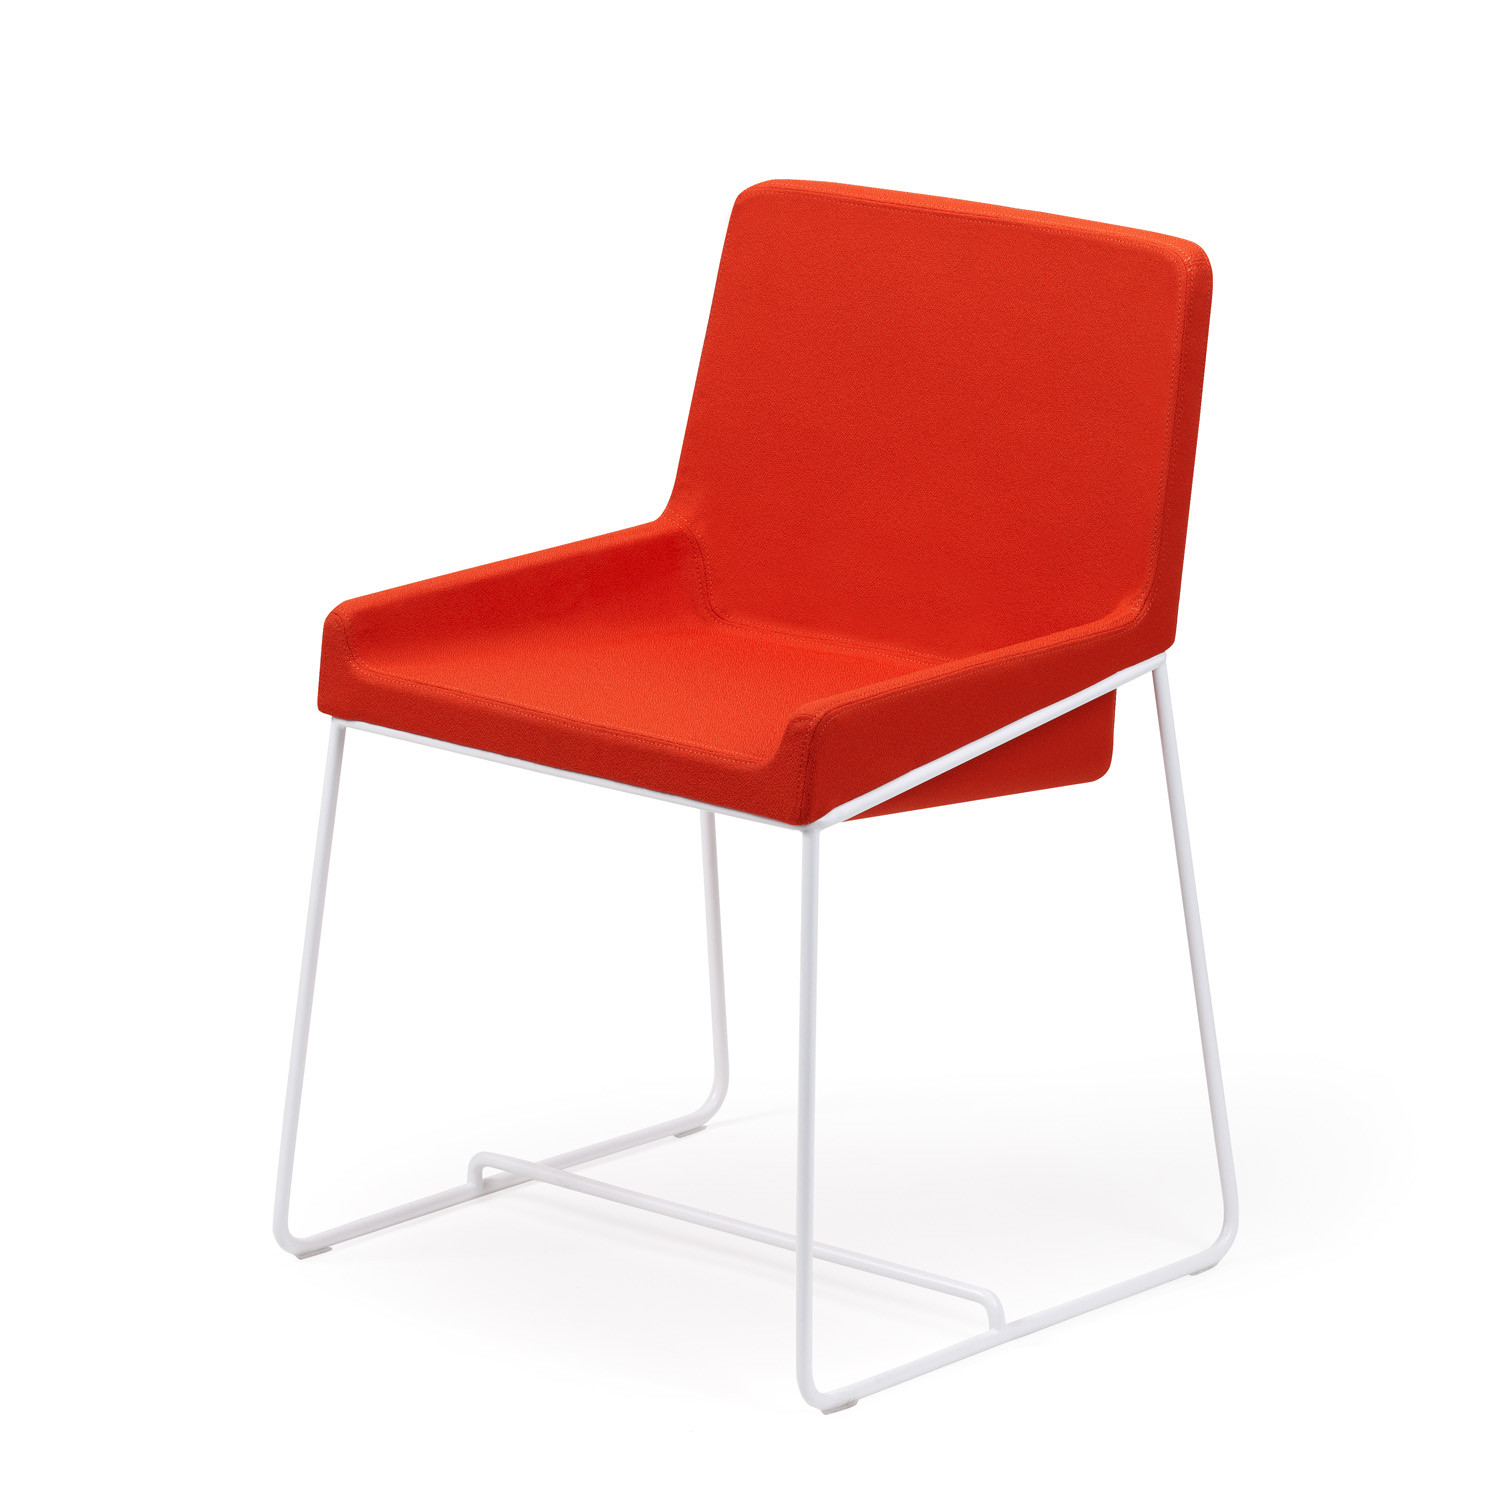 Tonic Chairs from Apres Furniture